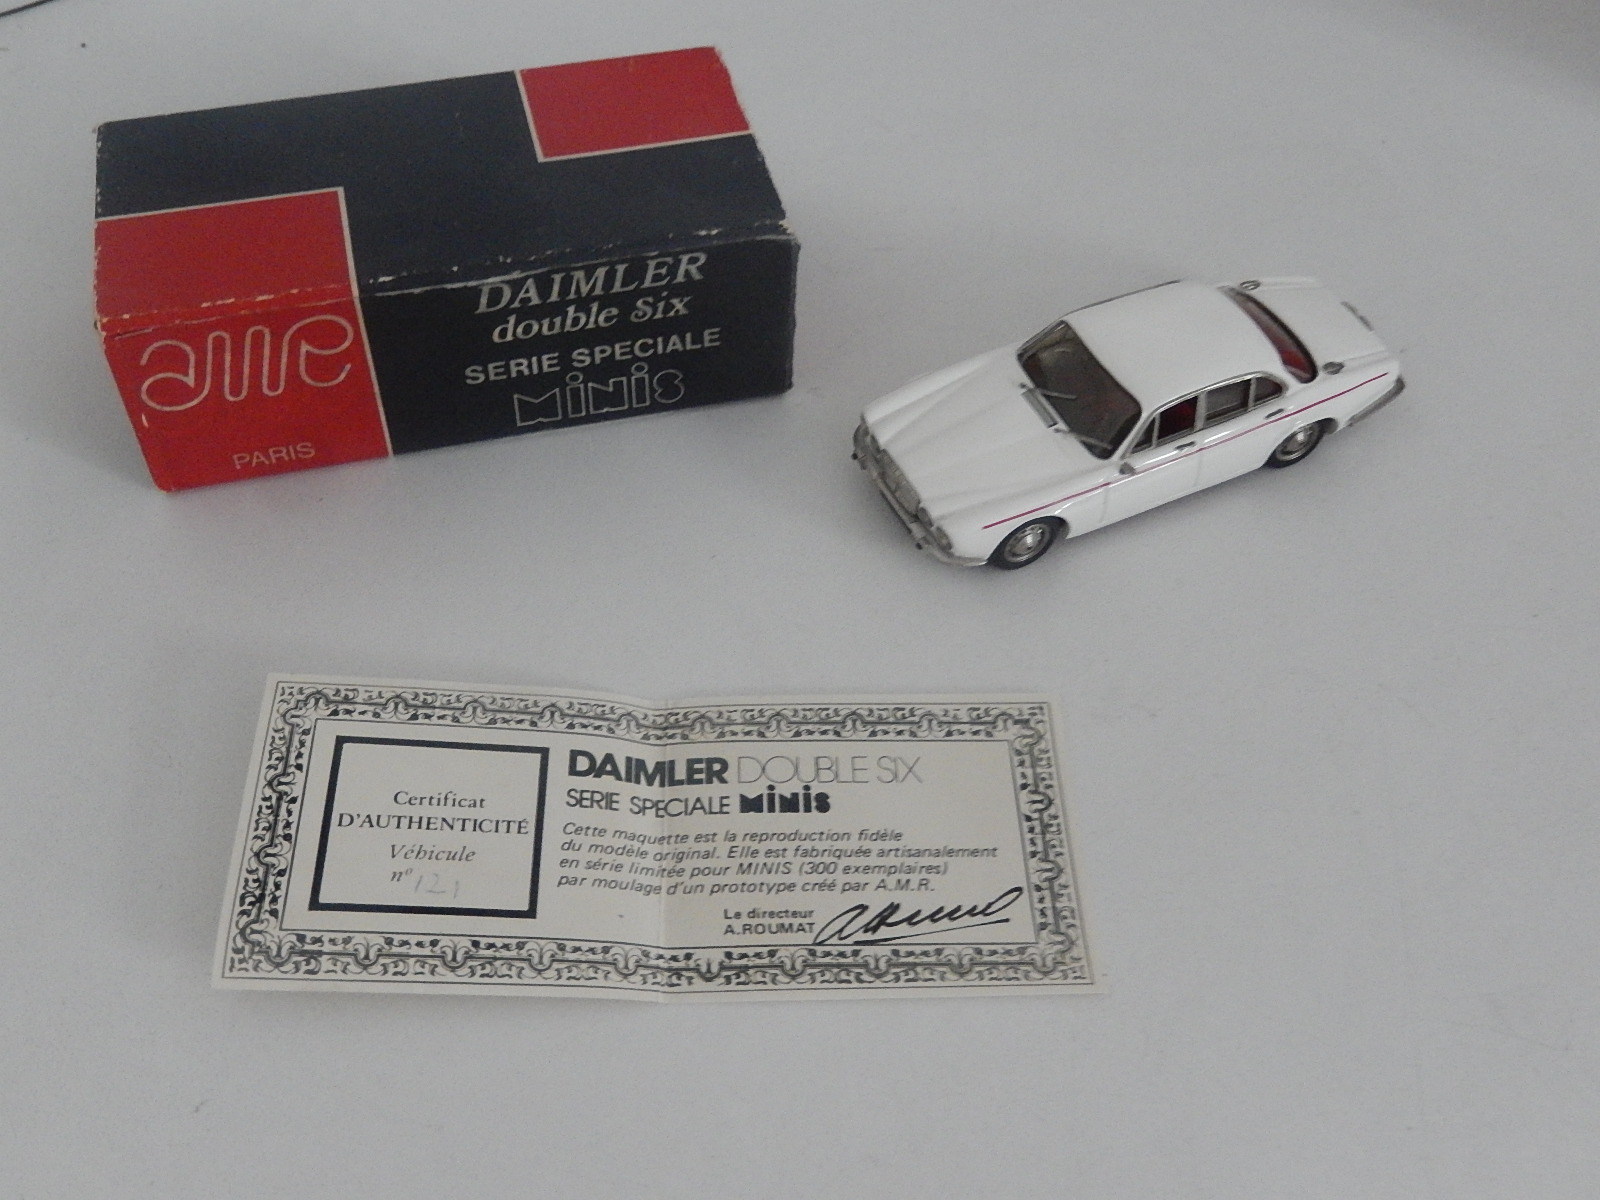 AM Ruf : Daimler Double six, special edition in 1976